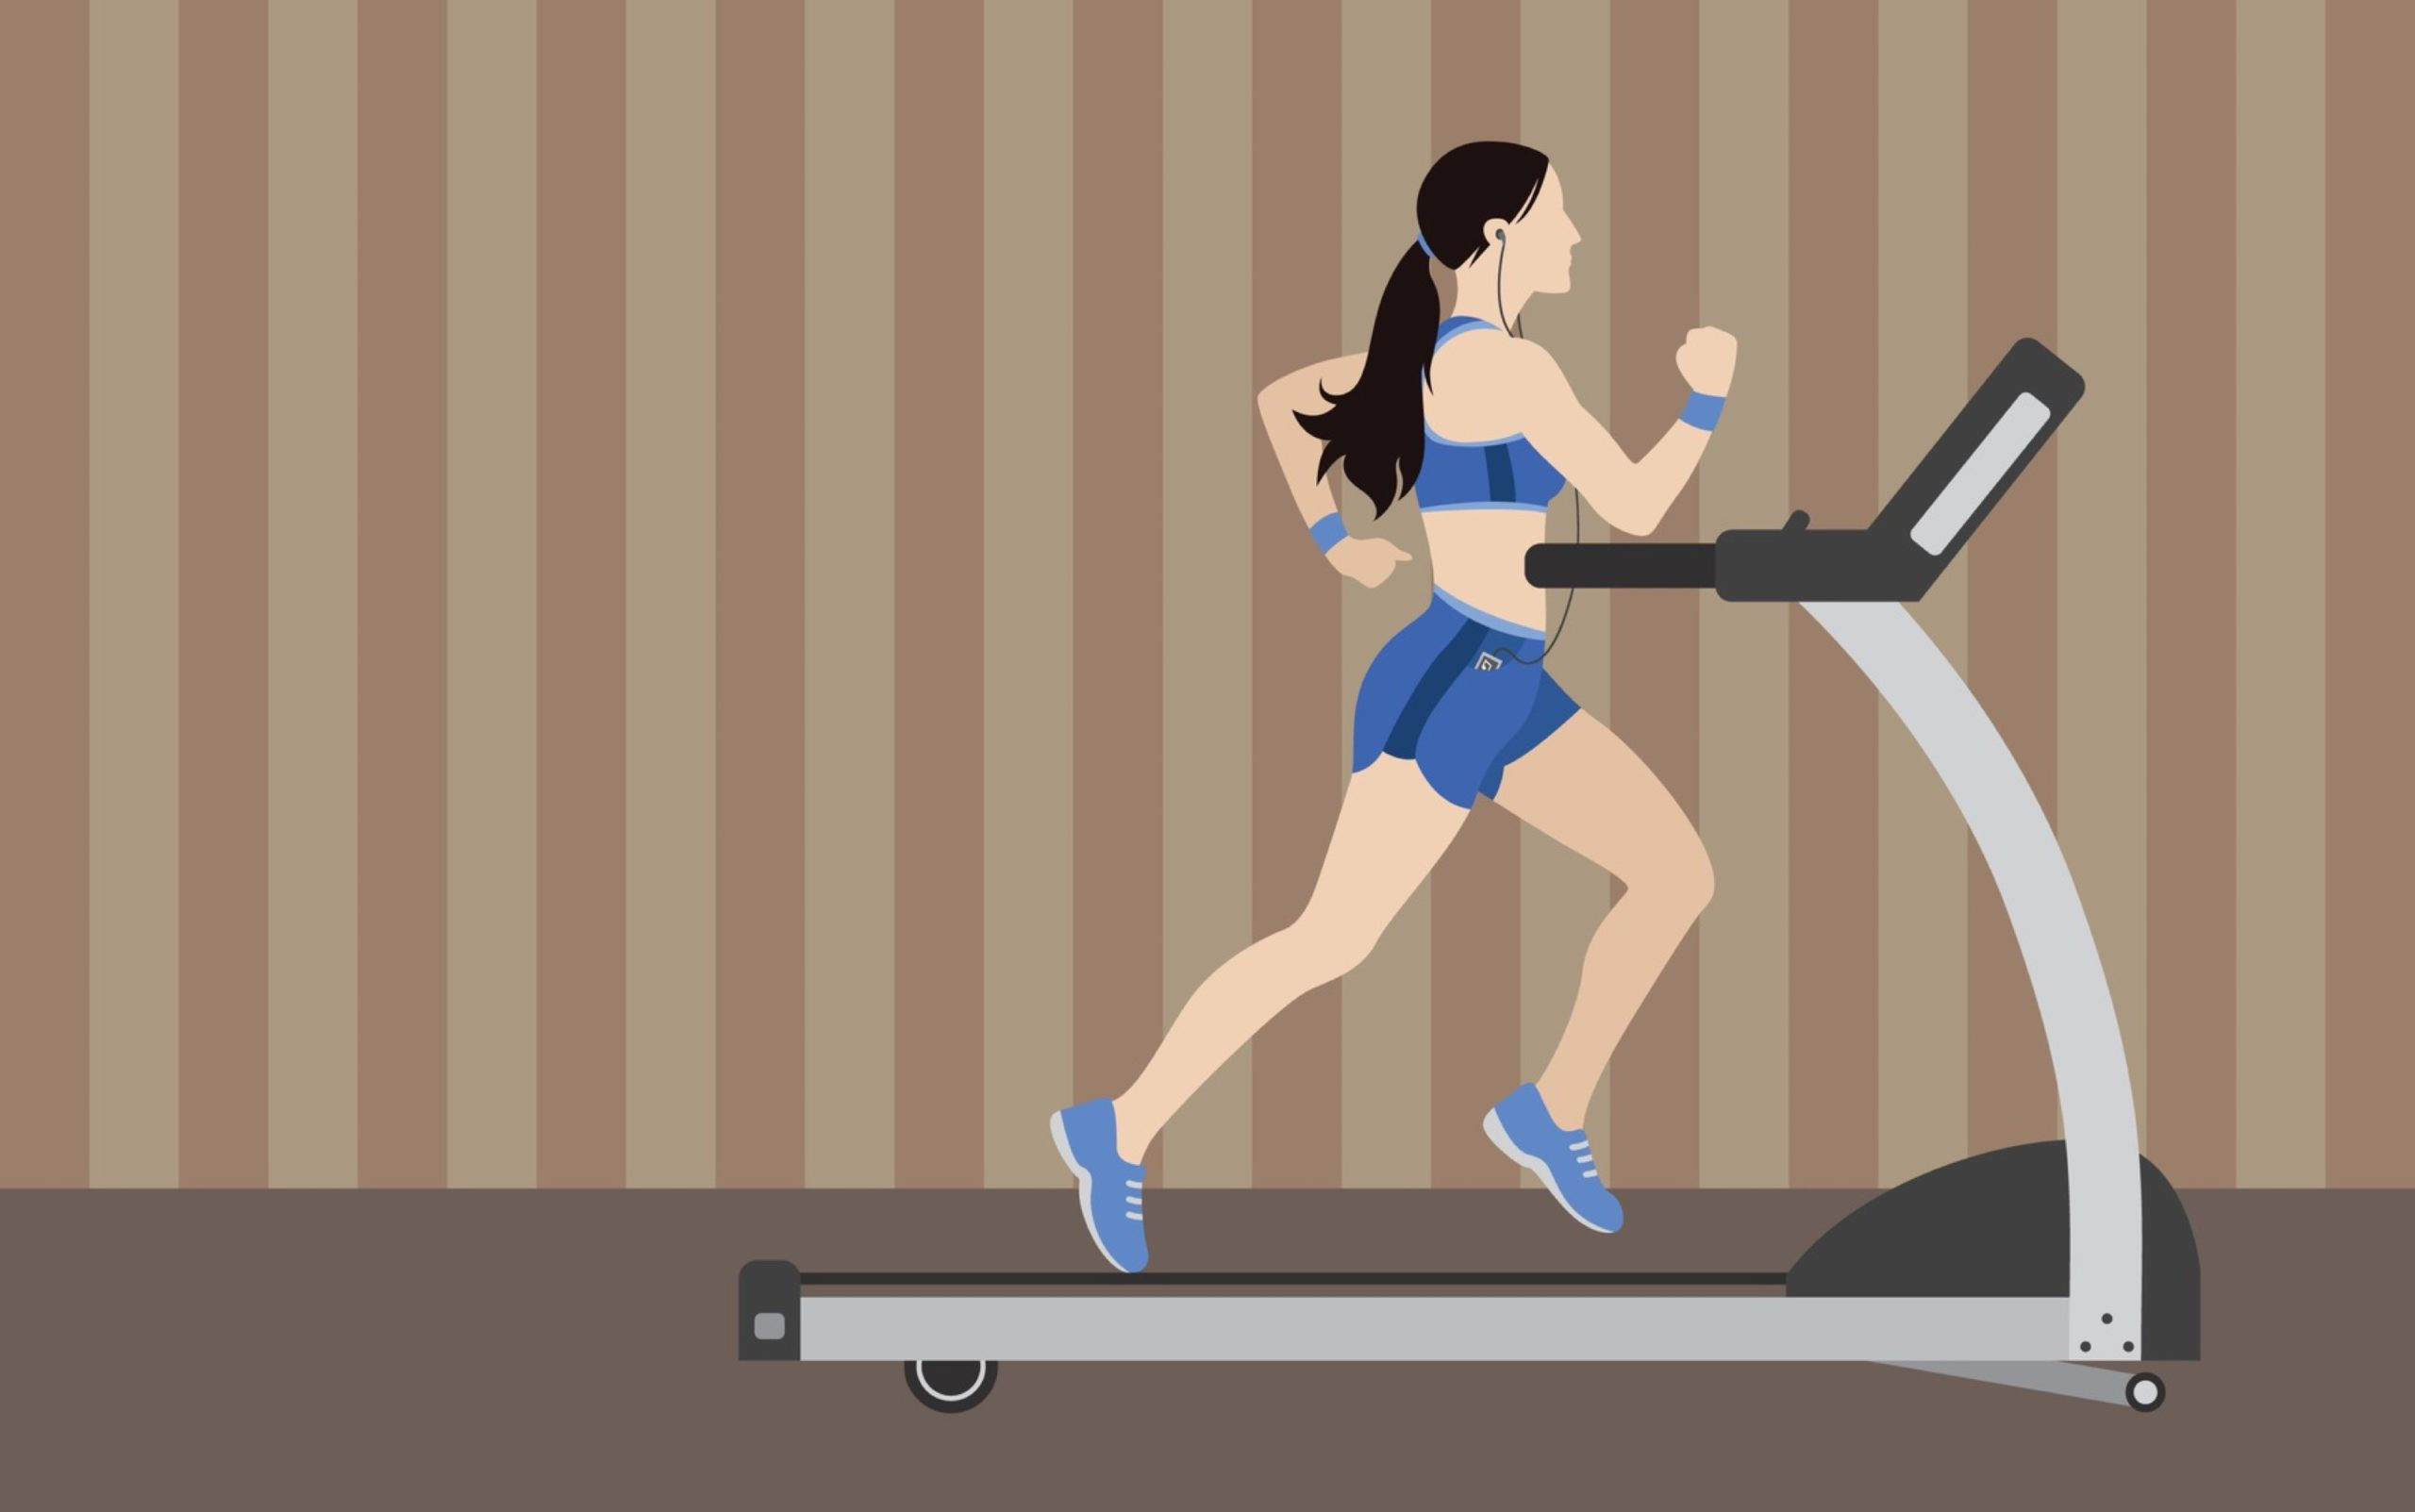 Treadmill_Girl_Running